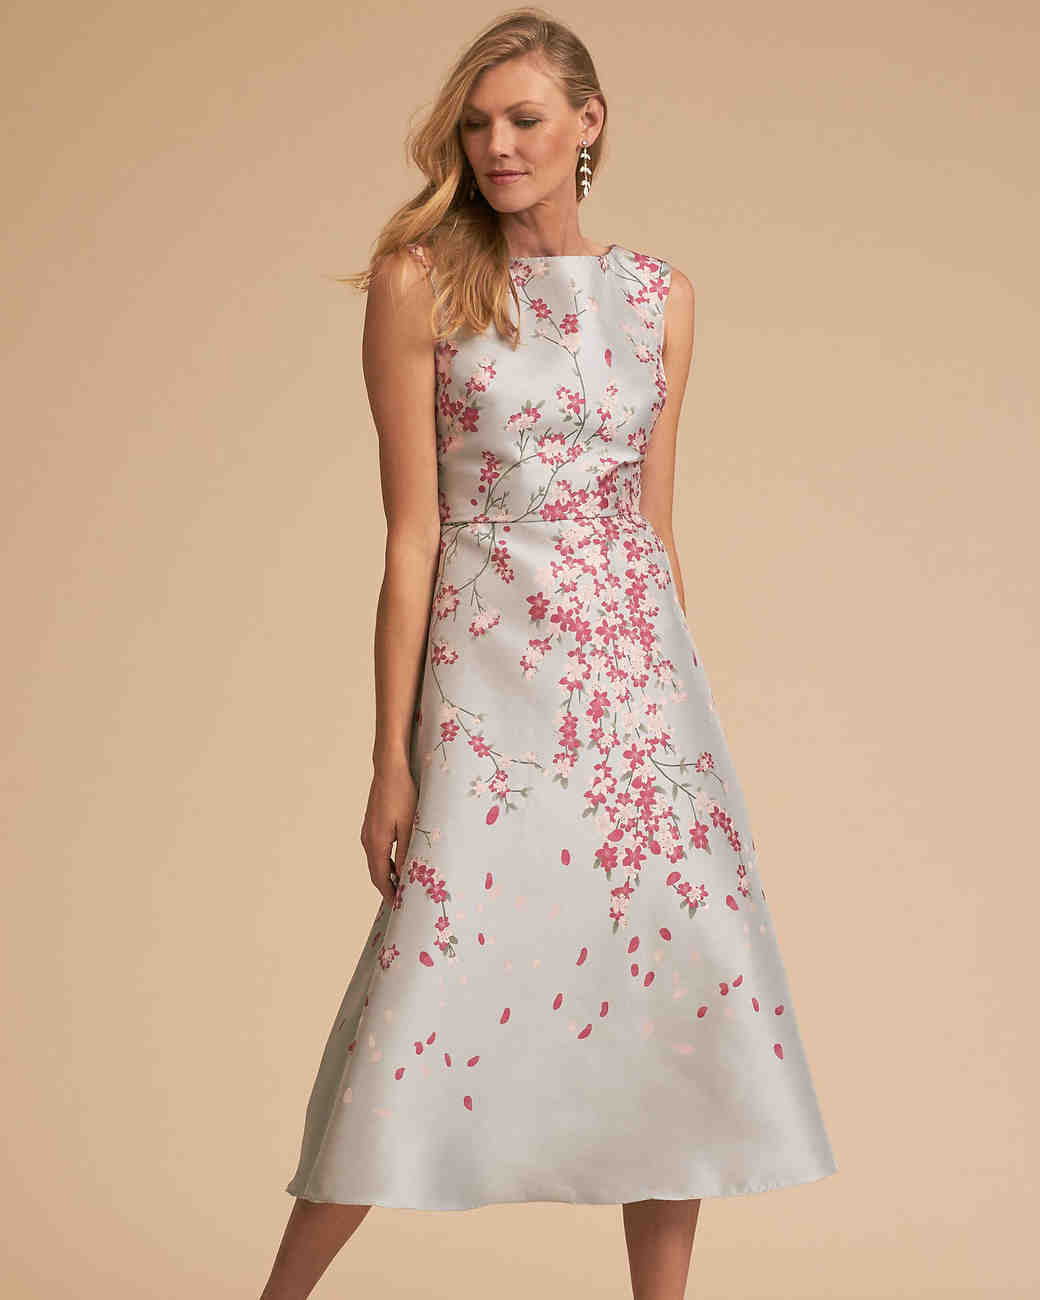 9decbcdb4c0 30 Floral Dresses for the Mothers of the Bride and Groom